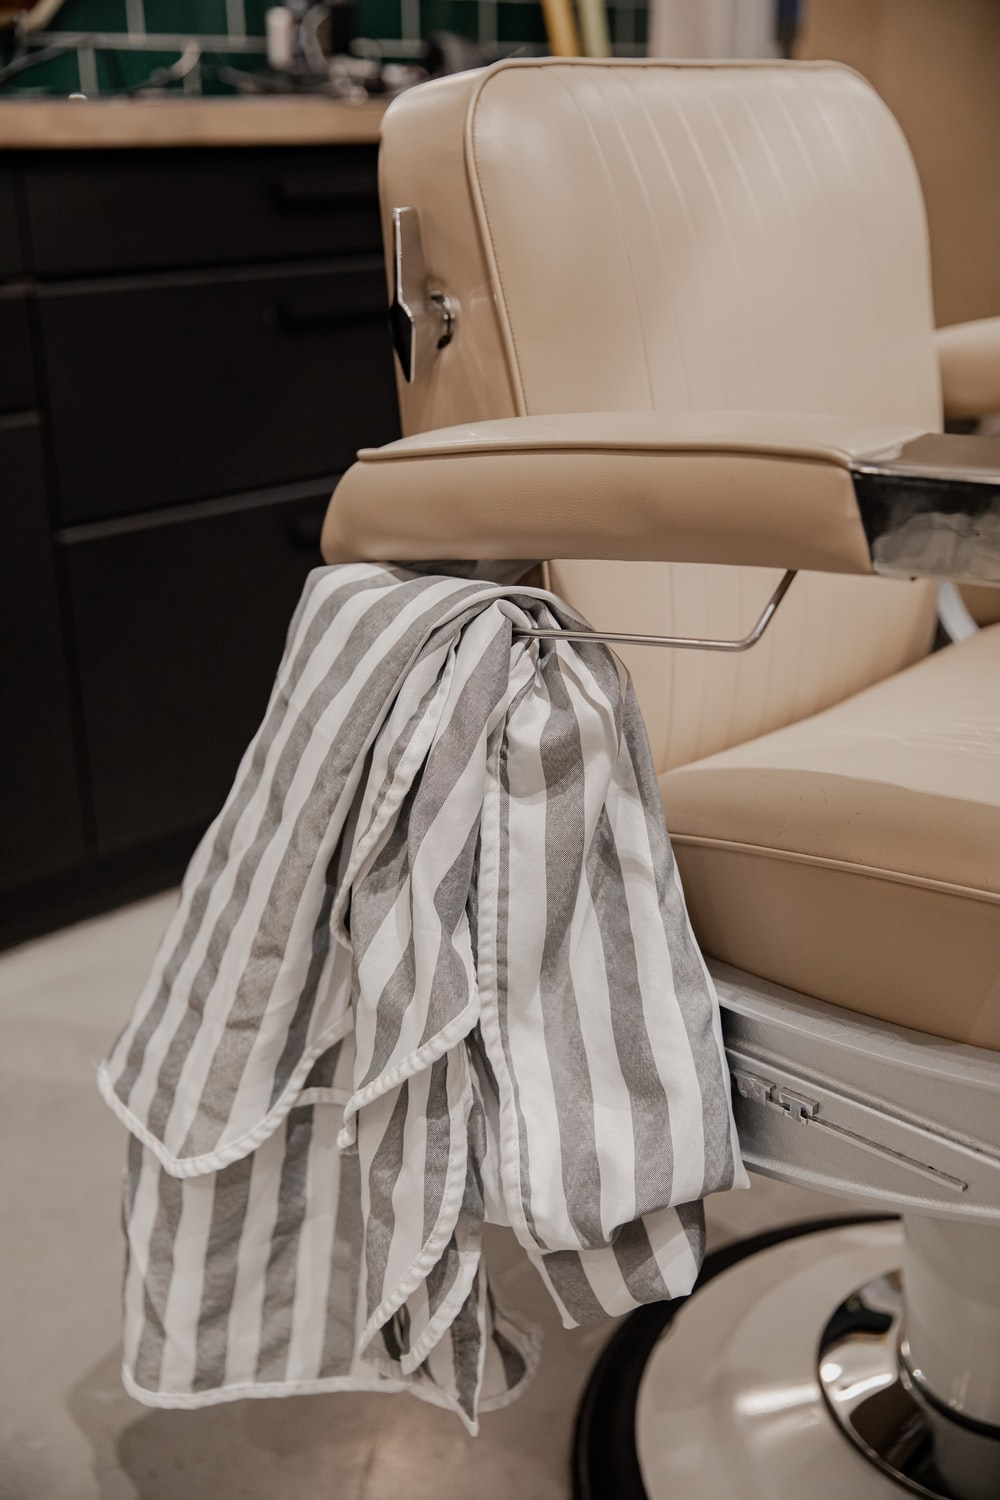 white and black textile on beige leather chair